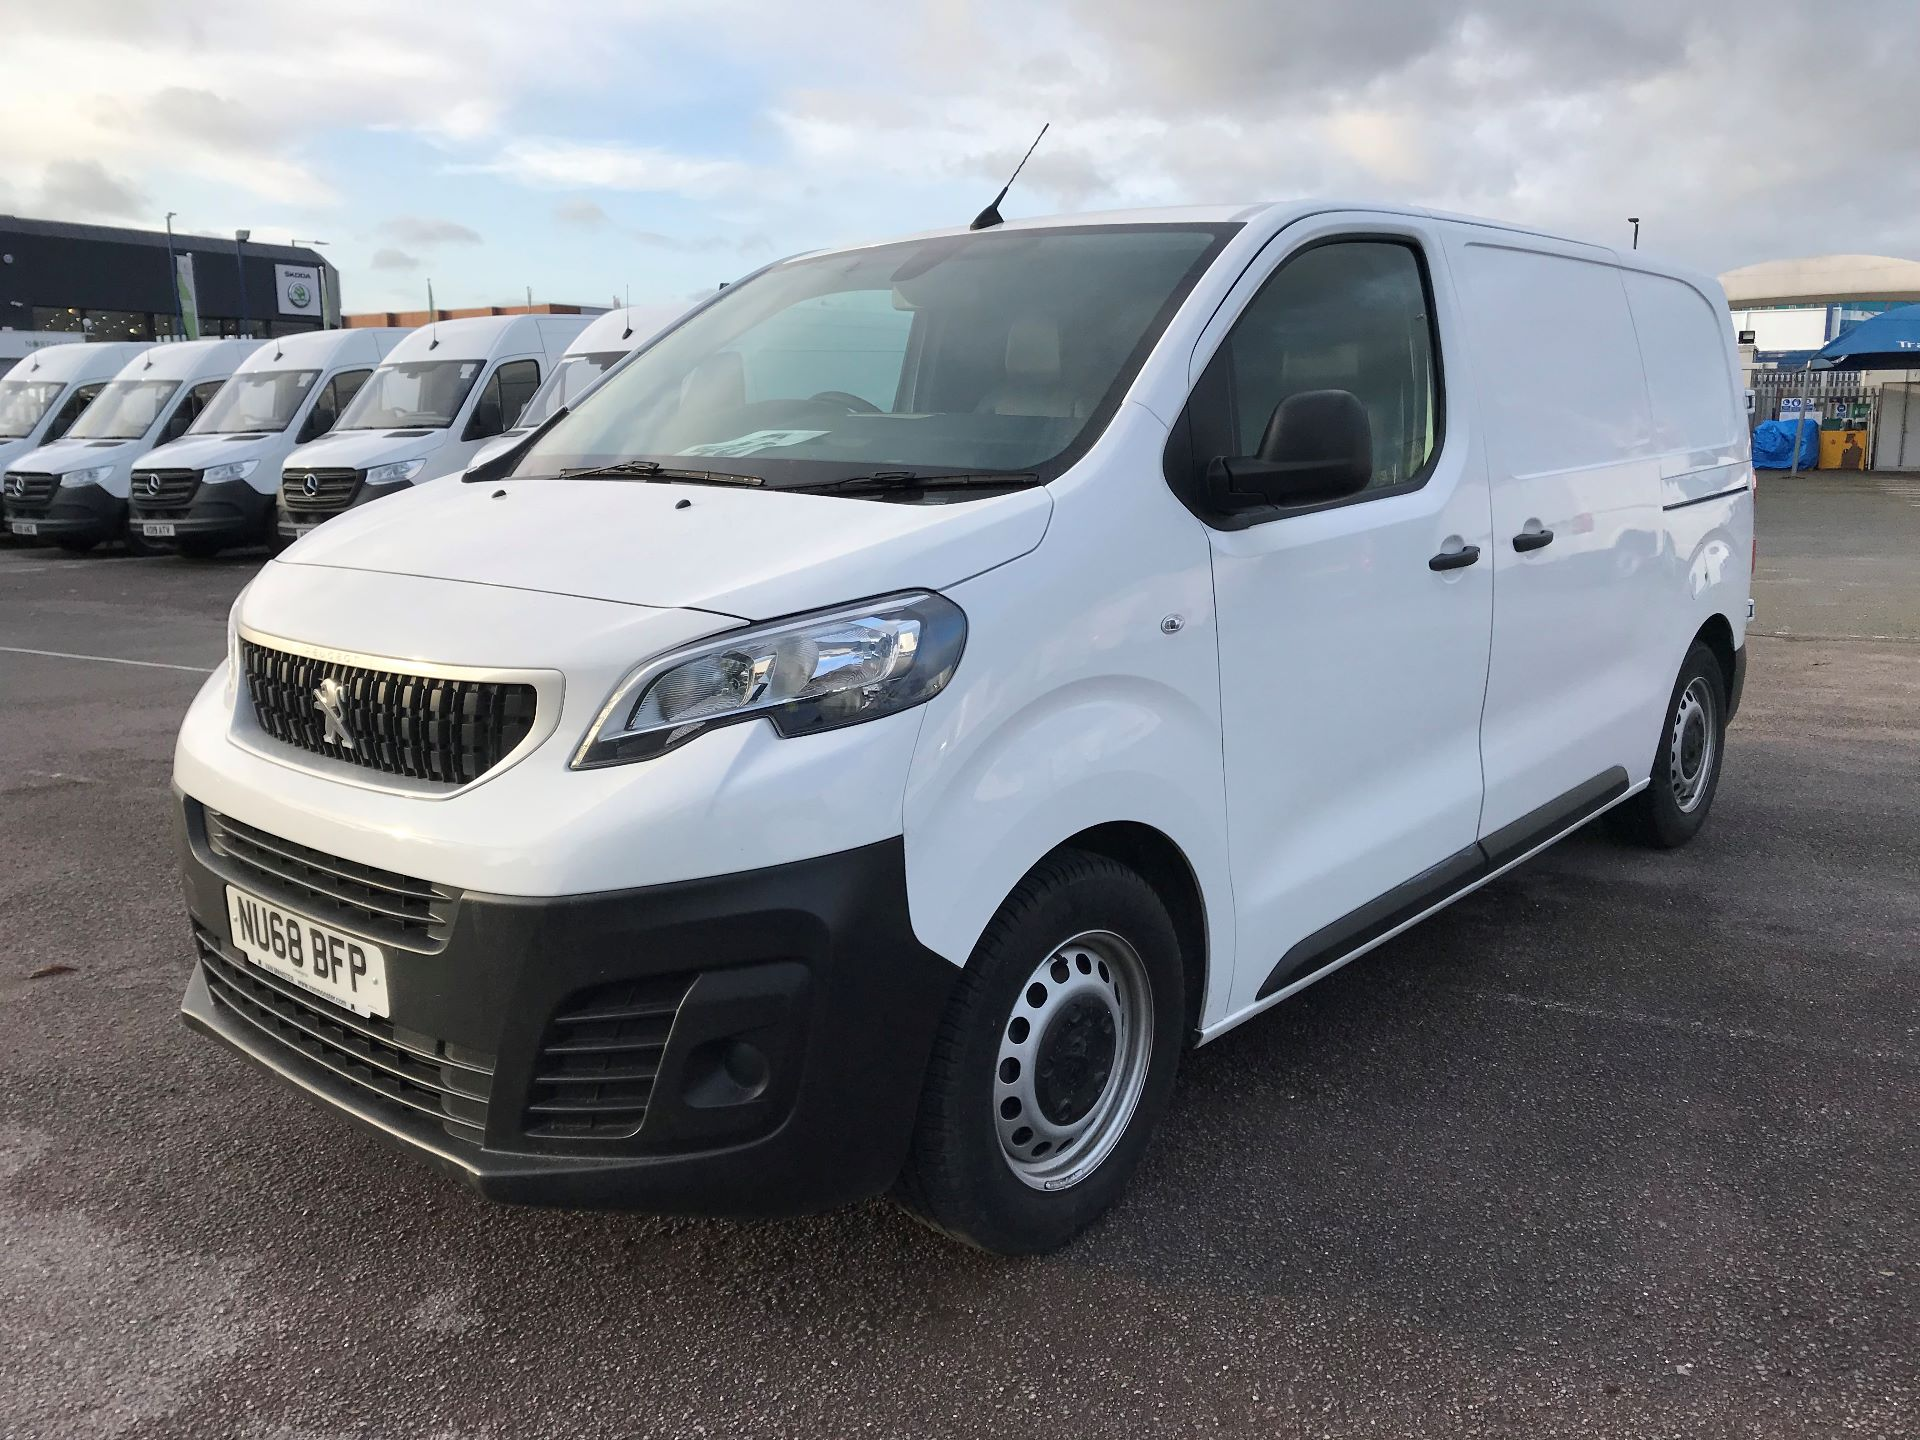 2018 Peugeot Expert   STANDARD 1000 1.6 BLUEHDI 95 PROFFESSIONAL EURO 6 (NU68BFP) Image 2